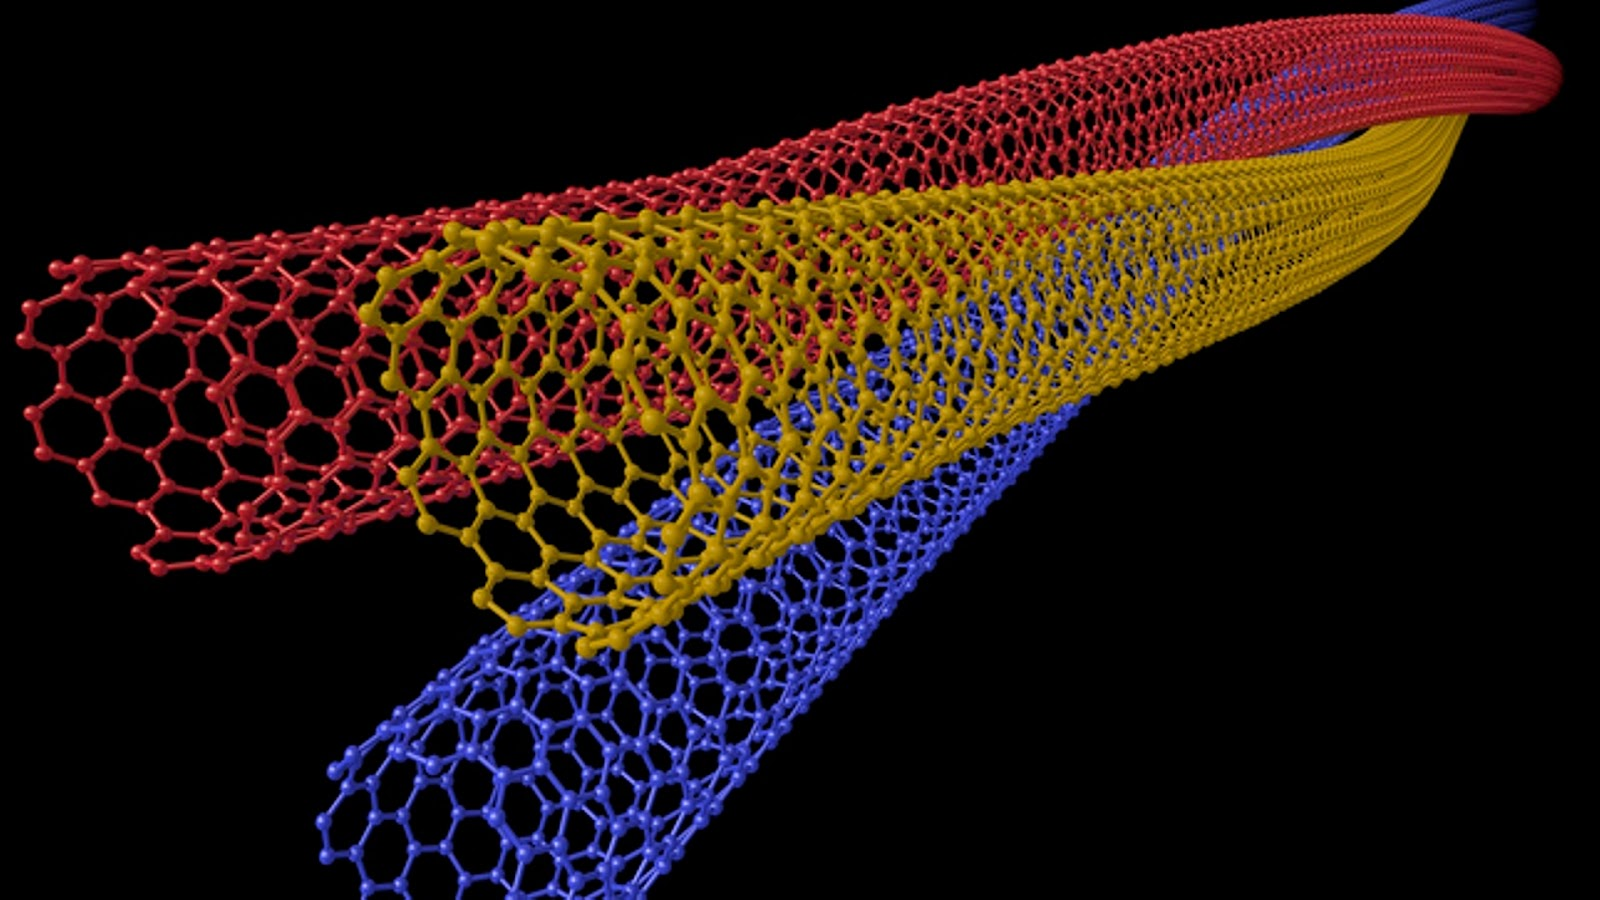 carbon nanotube Carbon nanotubes (cnts) are an allotrope of carbon they take the form of cylindrical carbon molecules and have novel properties that make them potentially useful in a wide variety of applications in nanotechnology, electronics, optics and other fields of materials science.